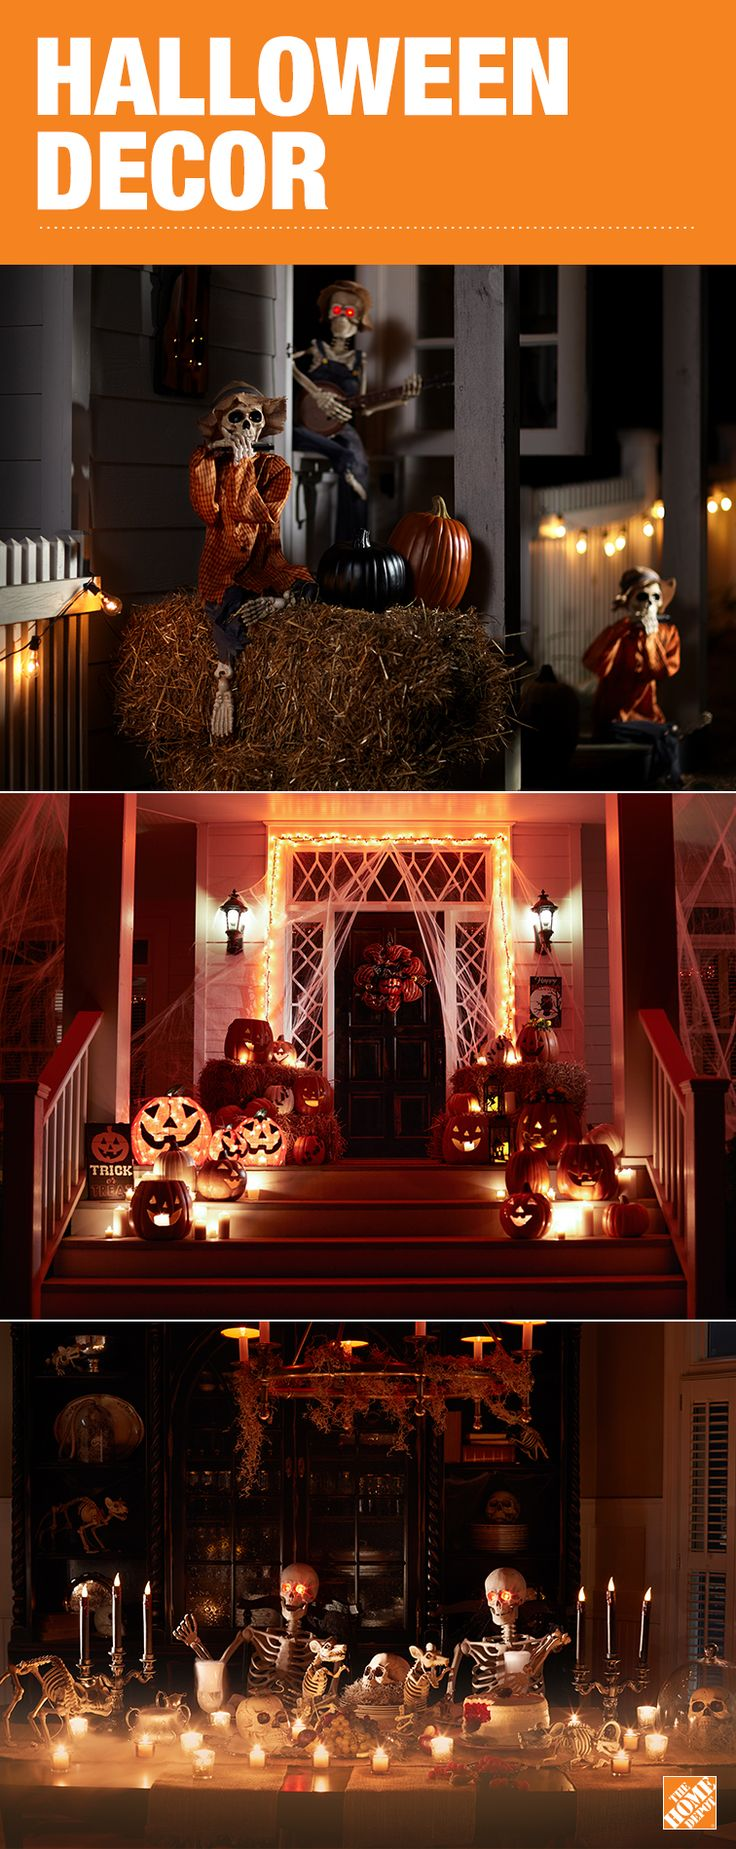 212 best Halloween images on Pinterest Halloween stuff, Carving - Scary Halloween Yard Decorating Ideas